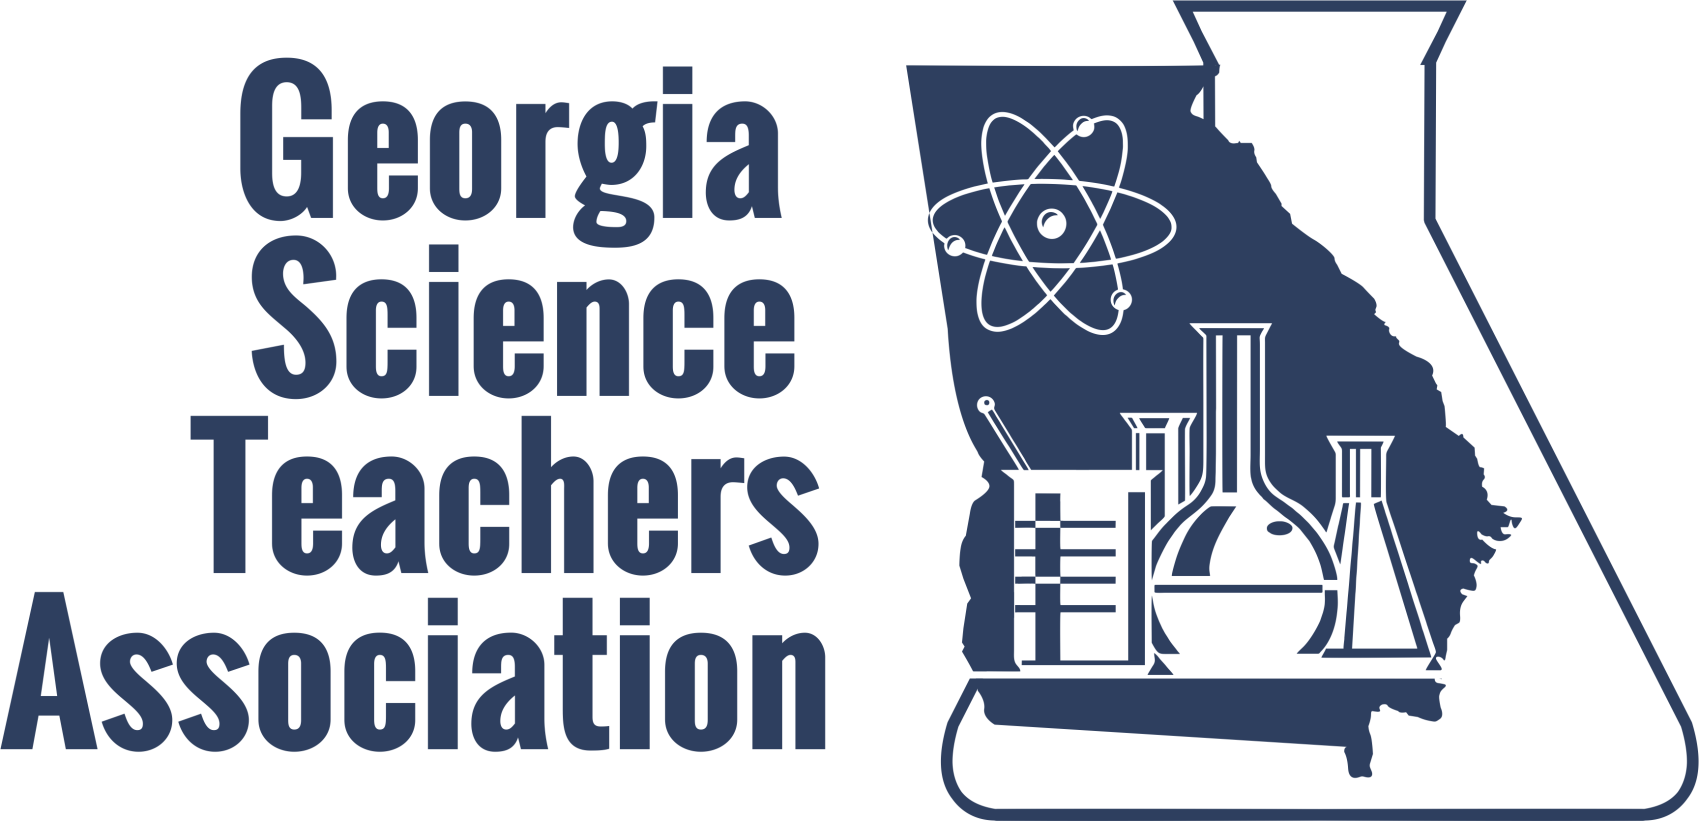 Georgia teachers association district. Clipart science physical science